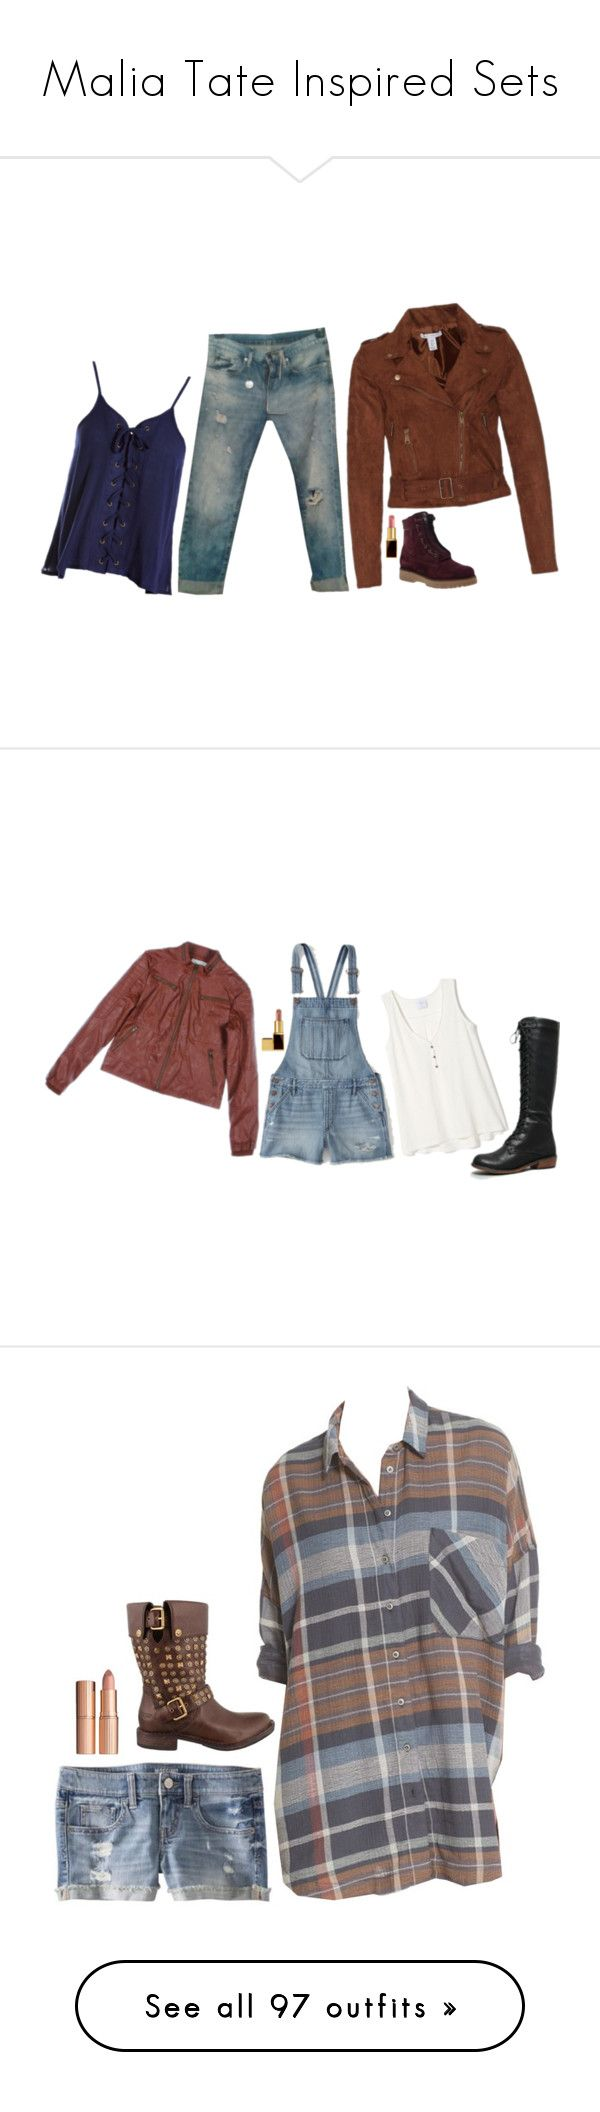 """""""Malia Tate Inspired Sets"""" by daniellakresovic ❤ liked on Polyvore featuring NLY Trend, Sans Souci, Manas, Tom Ford, Abercrombie & Fitch, Free People, Charlotte Tilbury, Chicnova Fashion, Hollister Co. and Frame"""